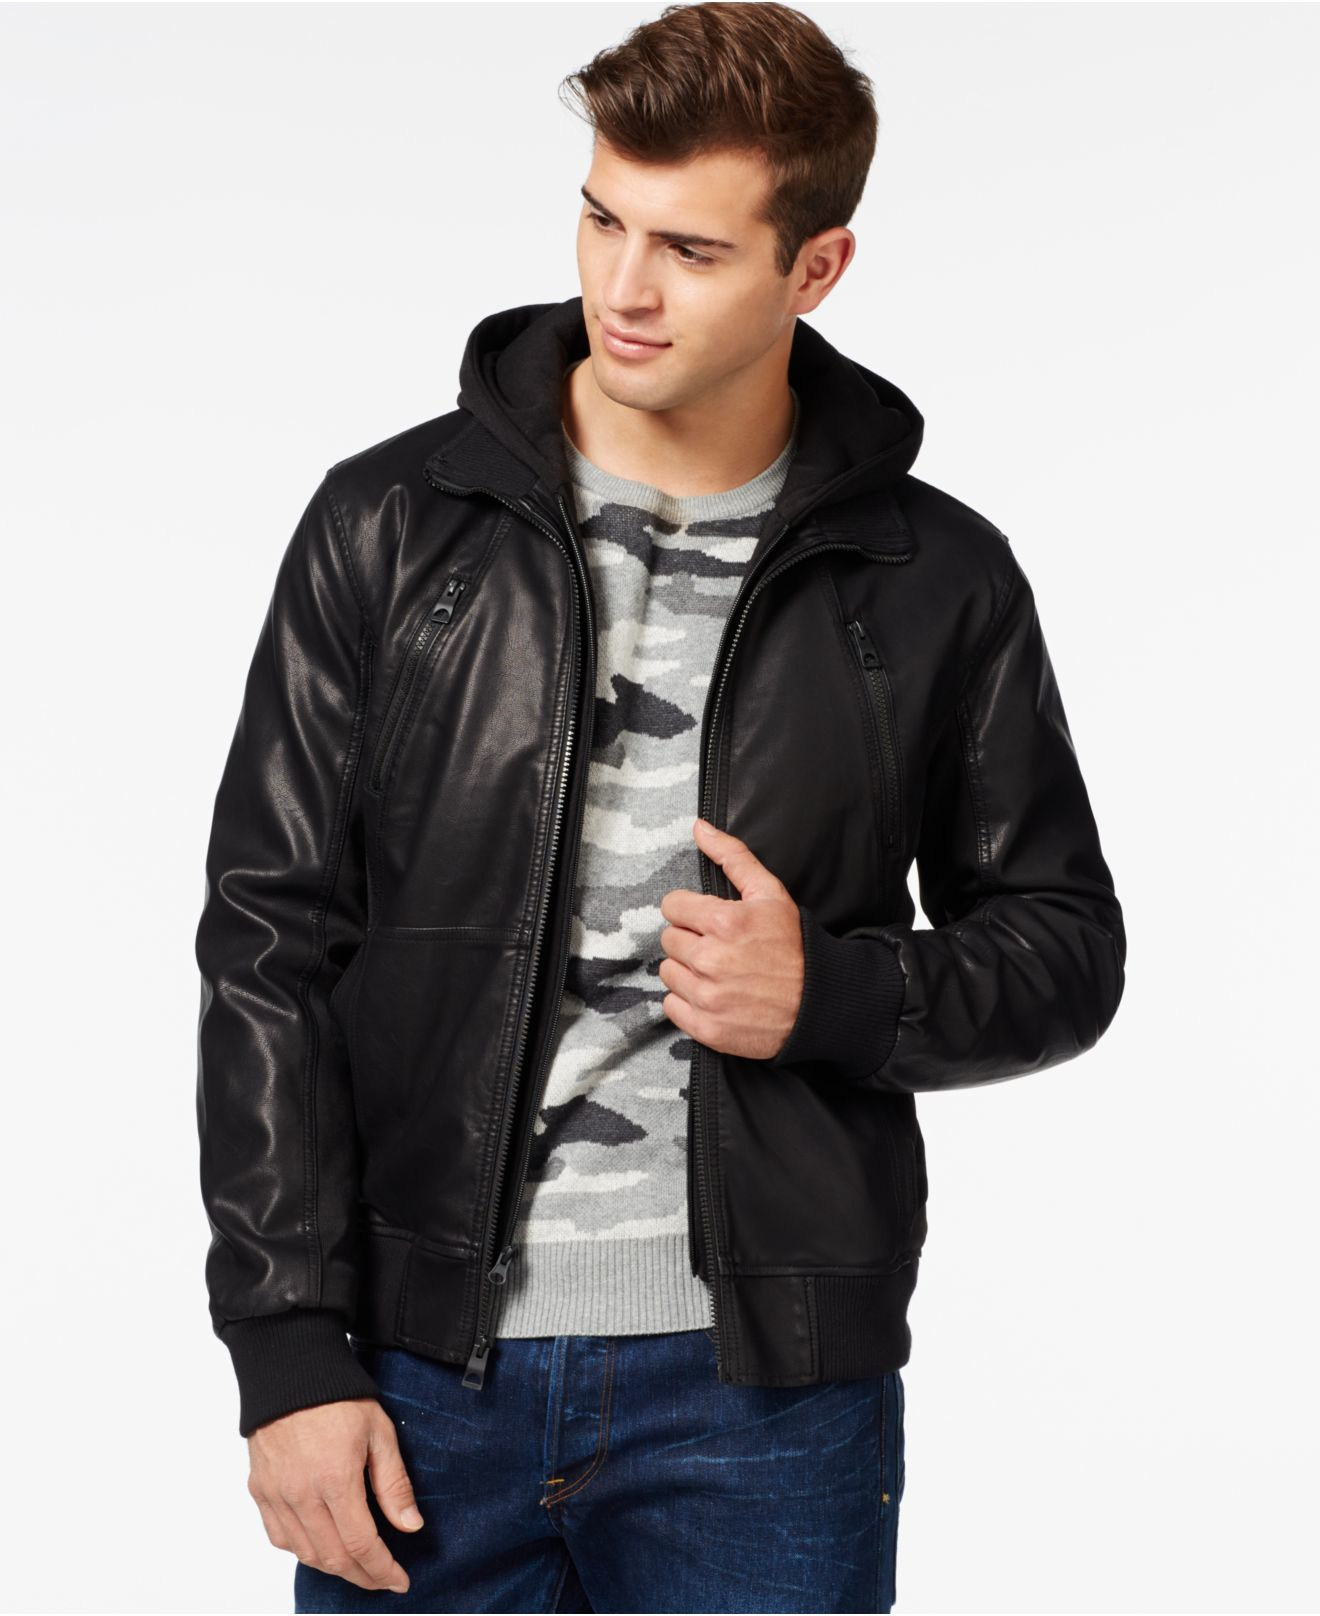 Guess Faux Leather Mixed Media Bomber In Black For Men Lyst